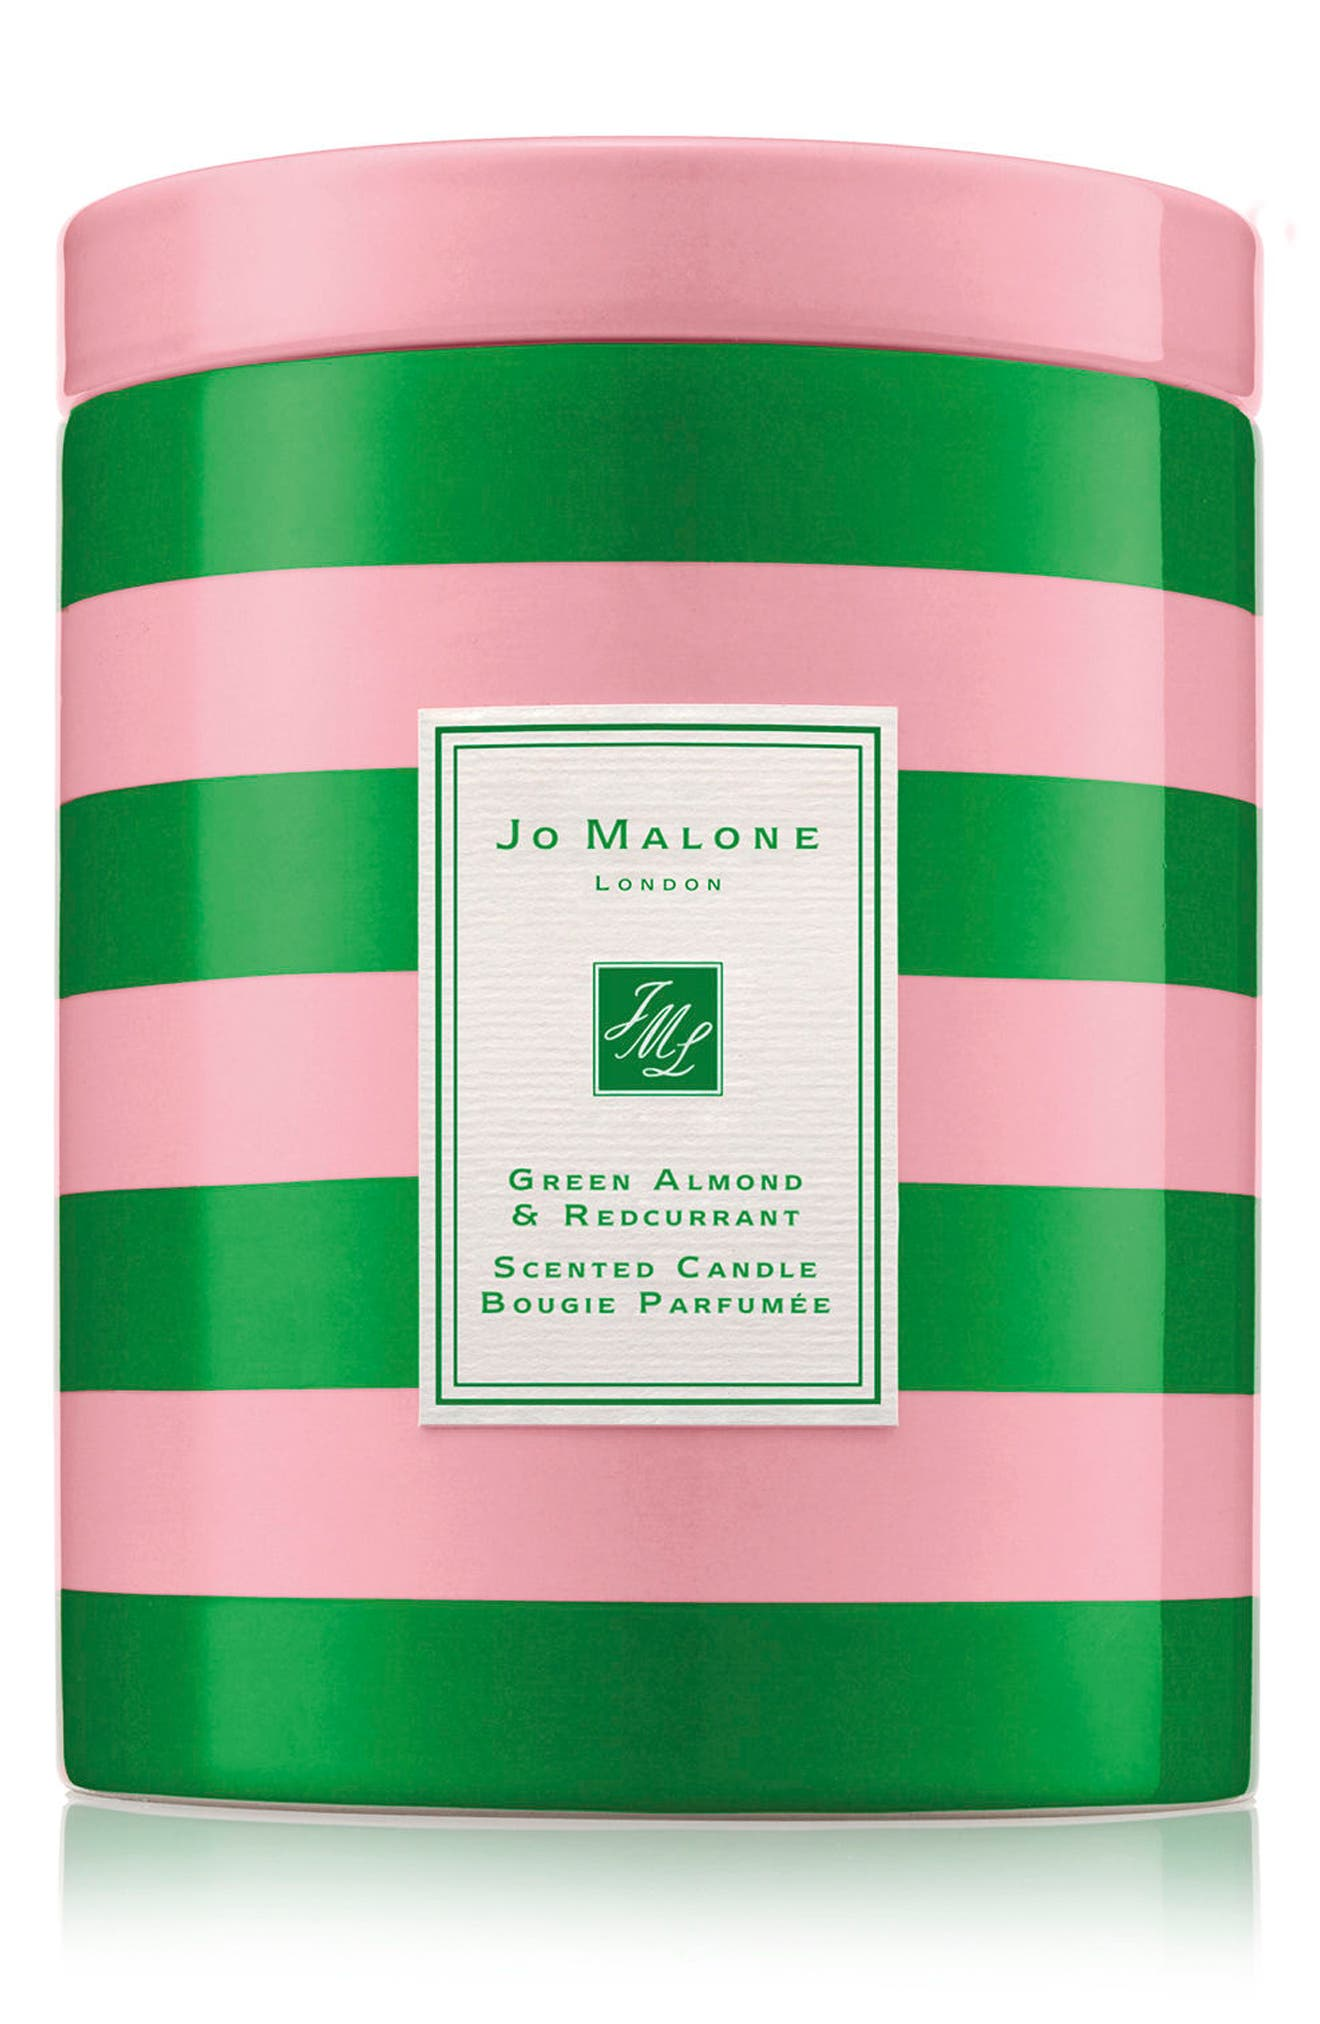 Green Almond & Redcurrant Scented Candle,                             Main thumbnail 1, color,                             000